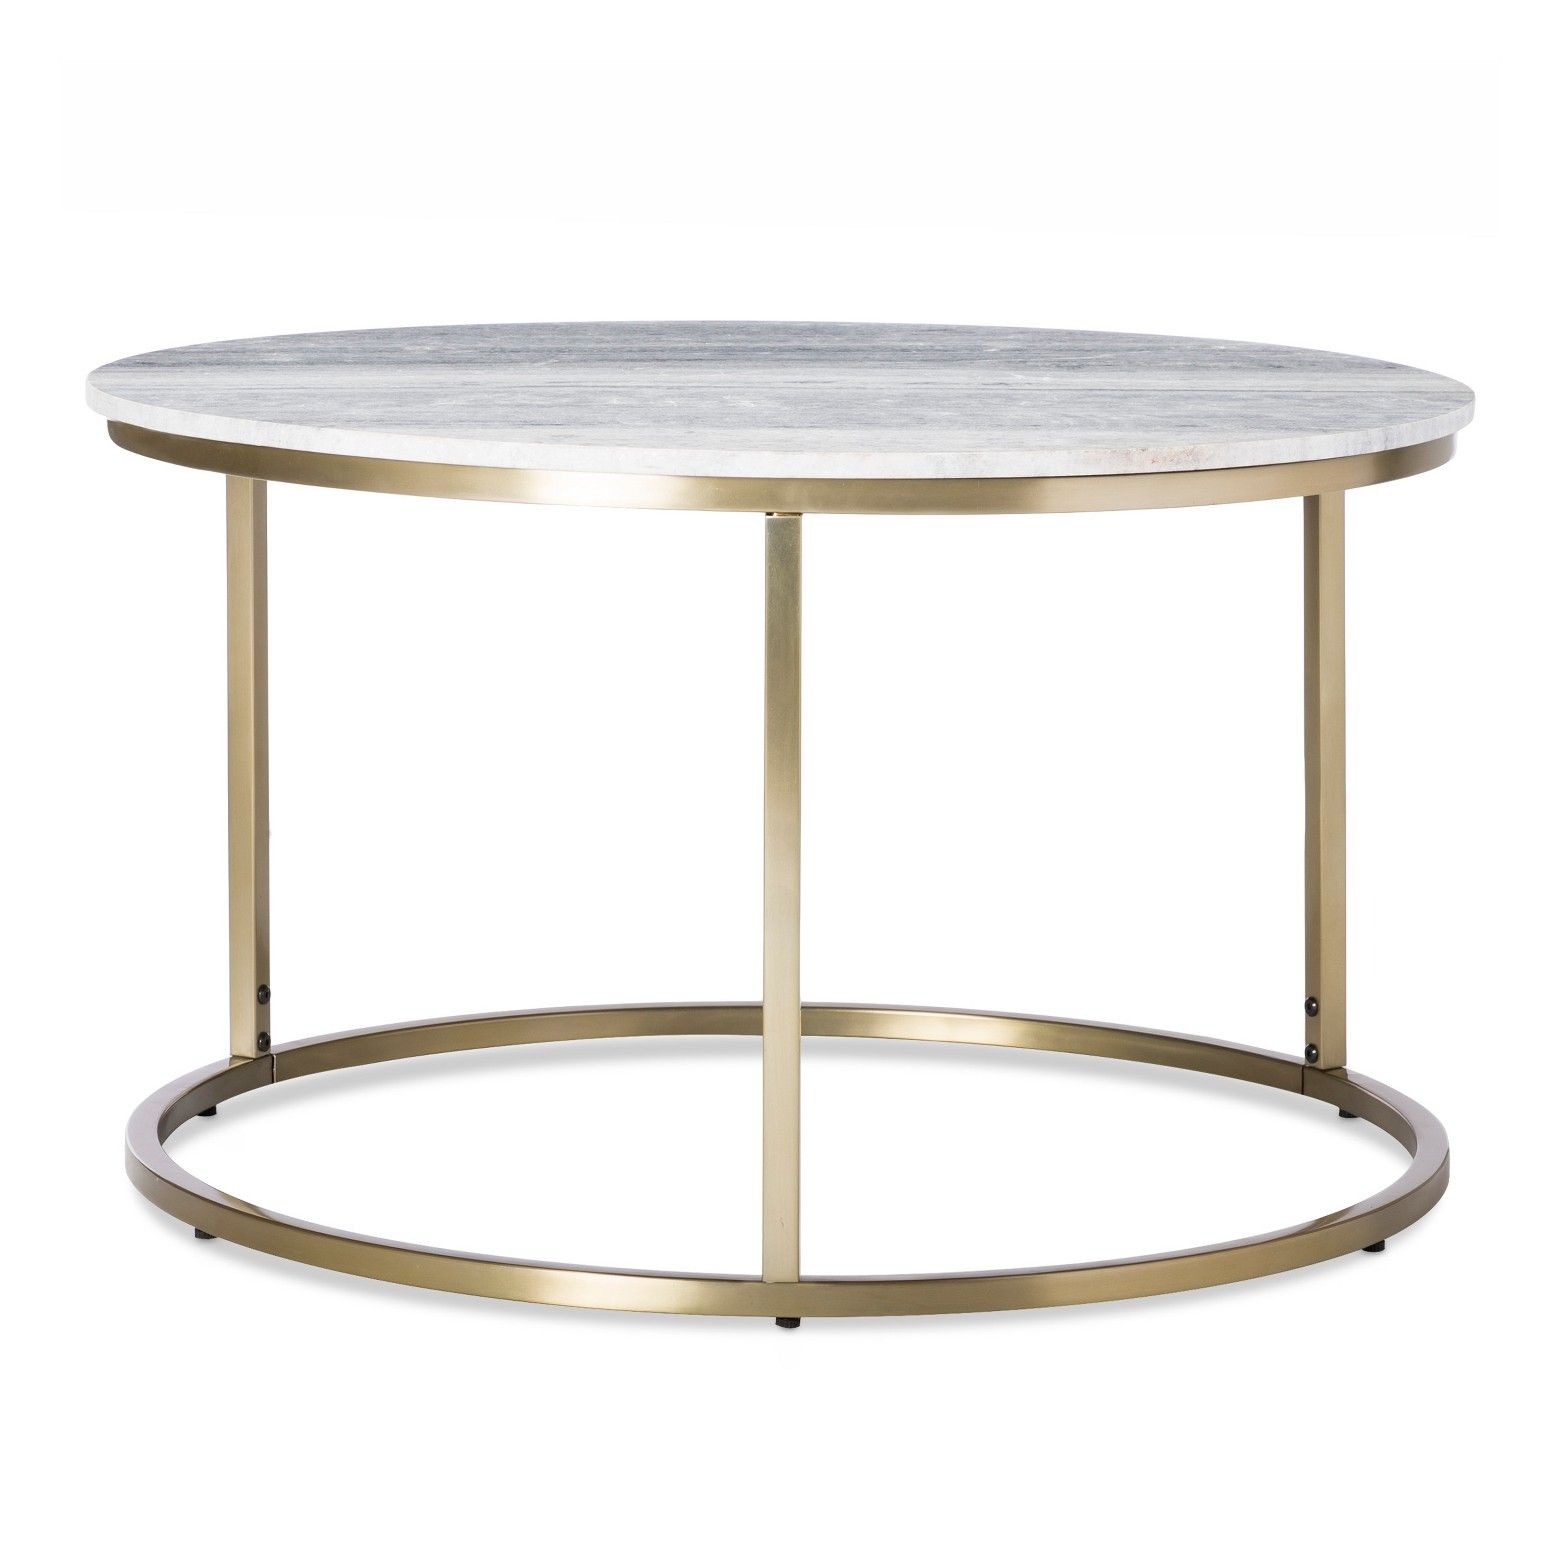 coffee tables target find great selection wood accent table marble top metal storage more free shipping orders sage green side white resin round end gold lamps tool cabinet